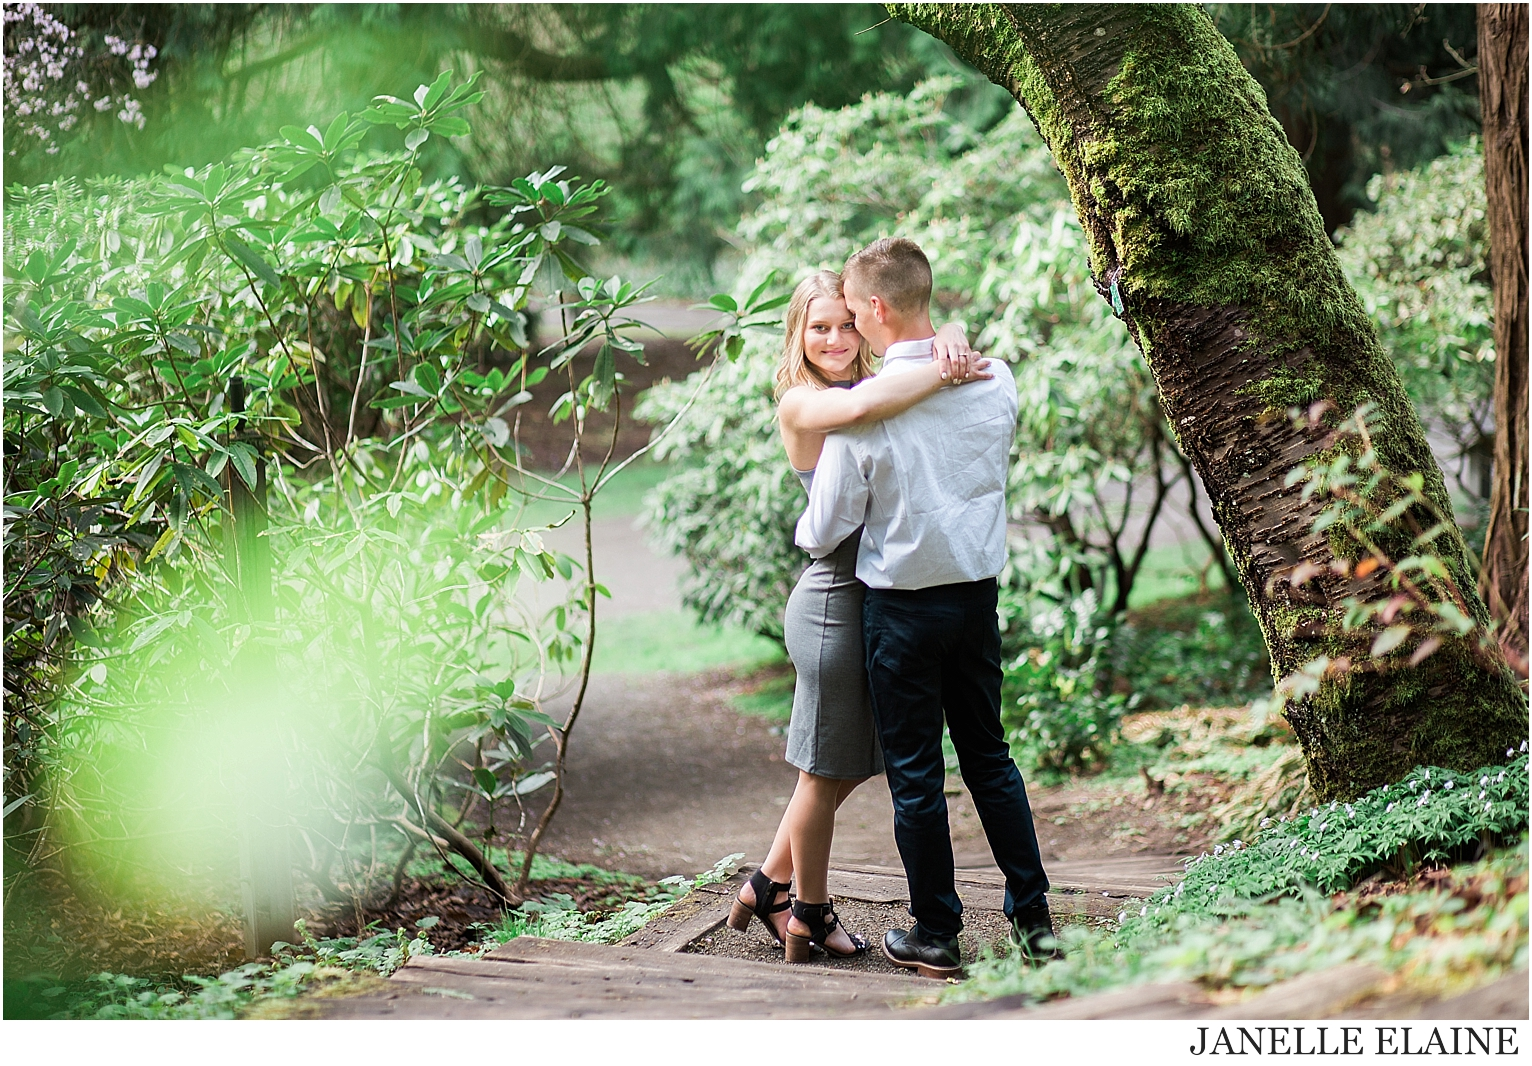 tricia and nate engagement photos-janelle elaine photography-38.jpg